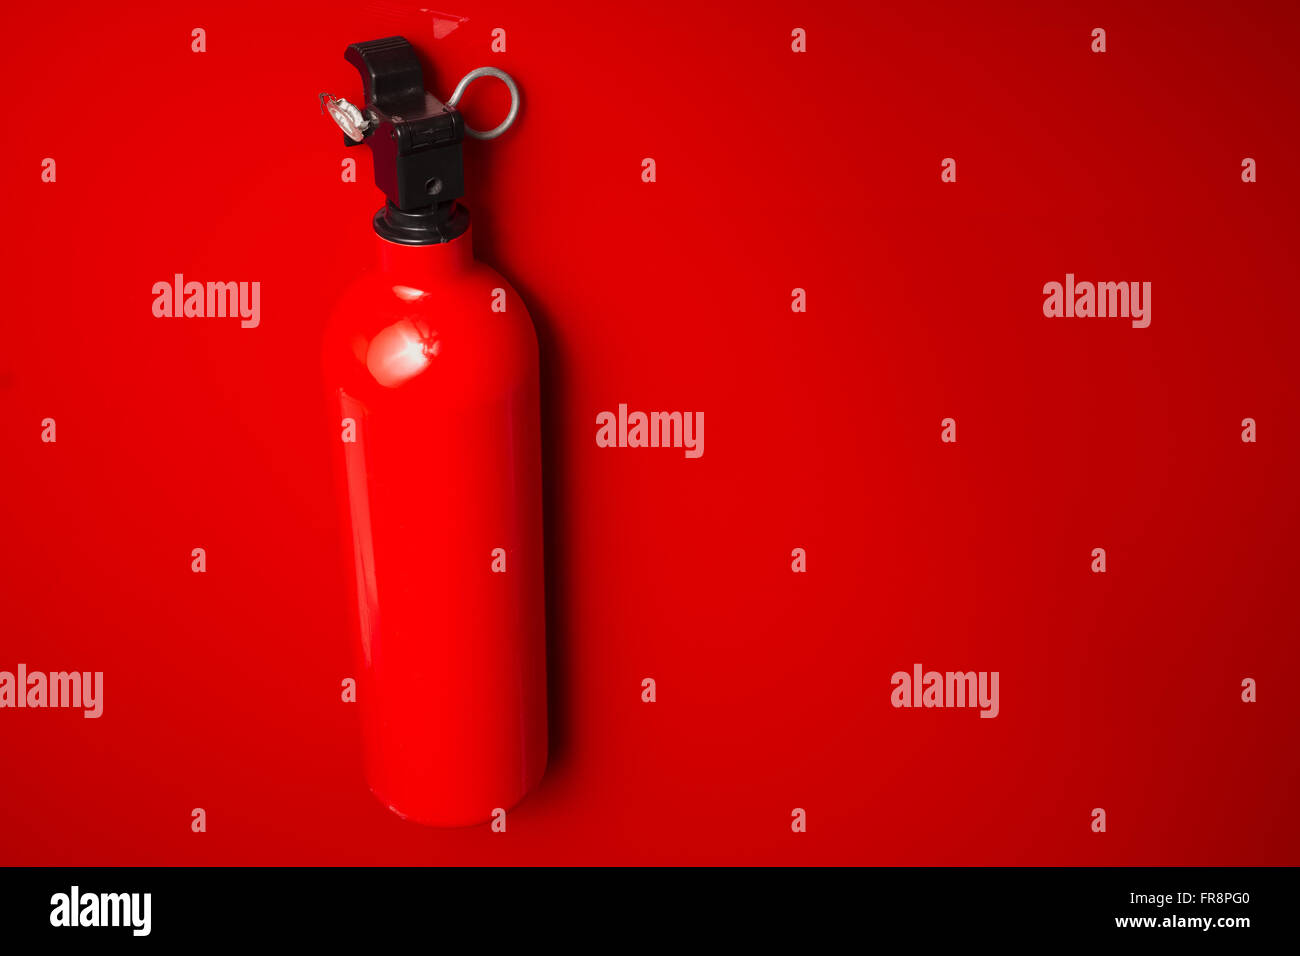 A small fire extinguisher hanging on a red wall ready to use. The lock pin and sealing is intact. - Stock Image